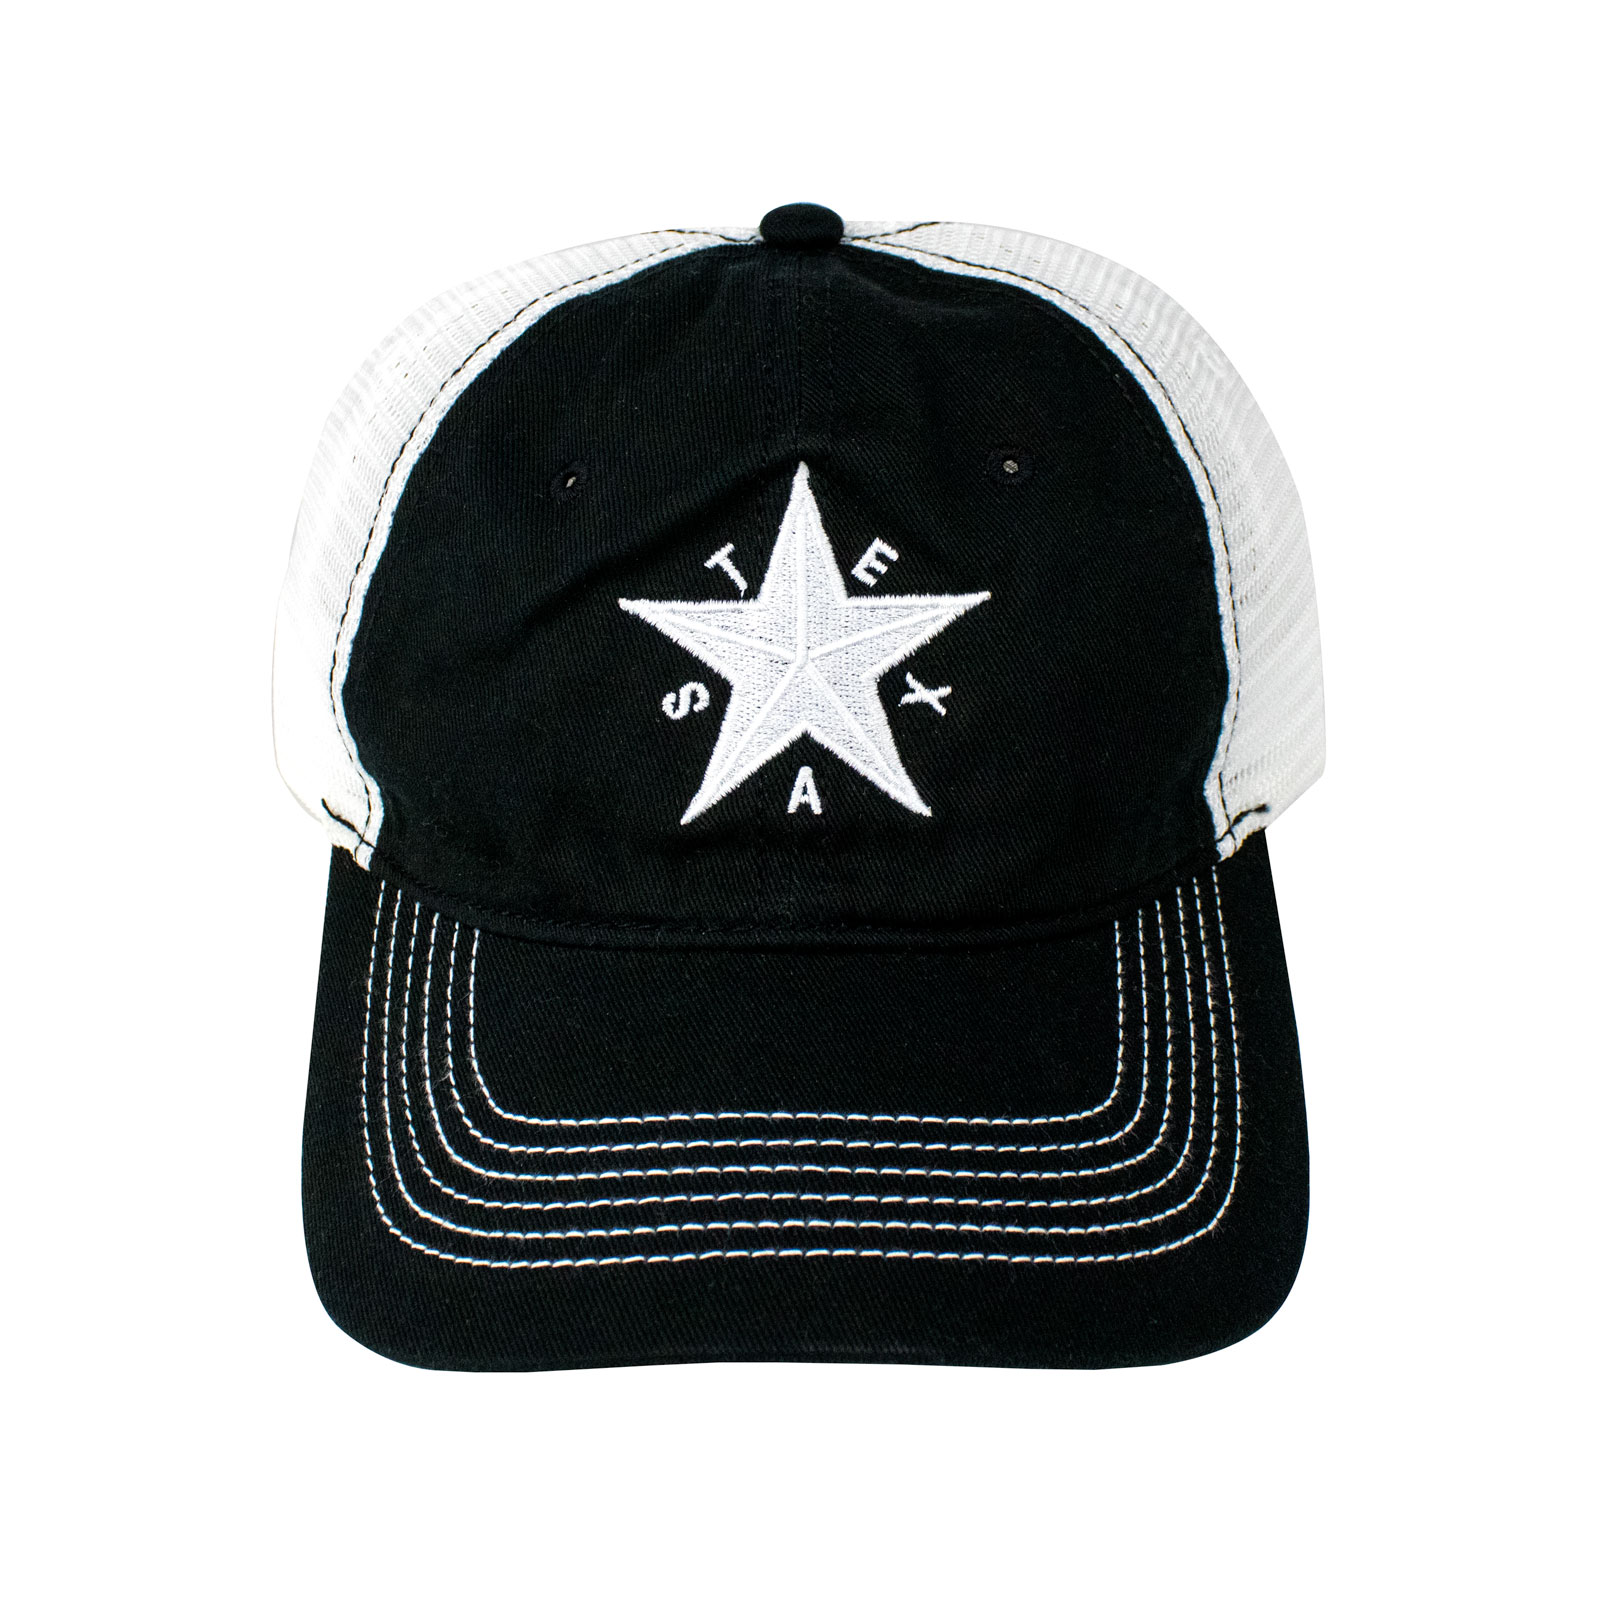 First Flag of the Republic of Texas Black Baseball Hat